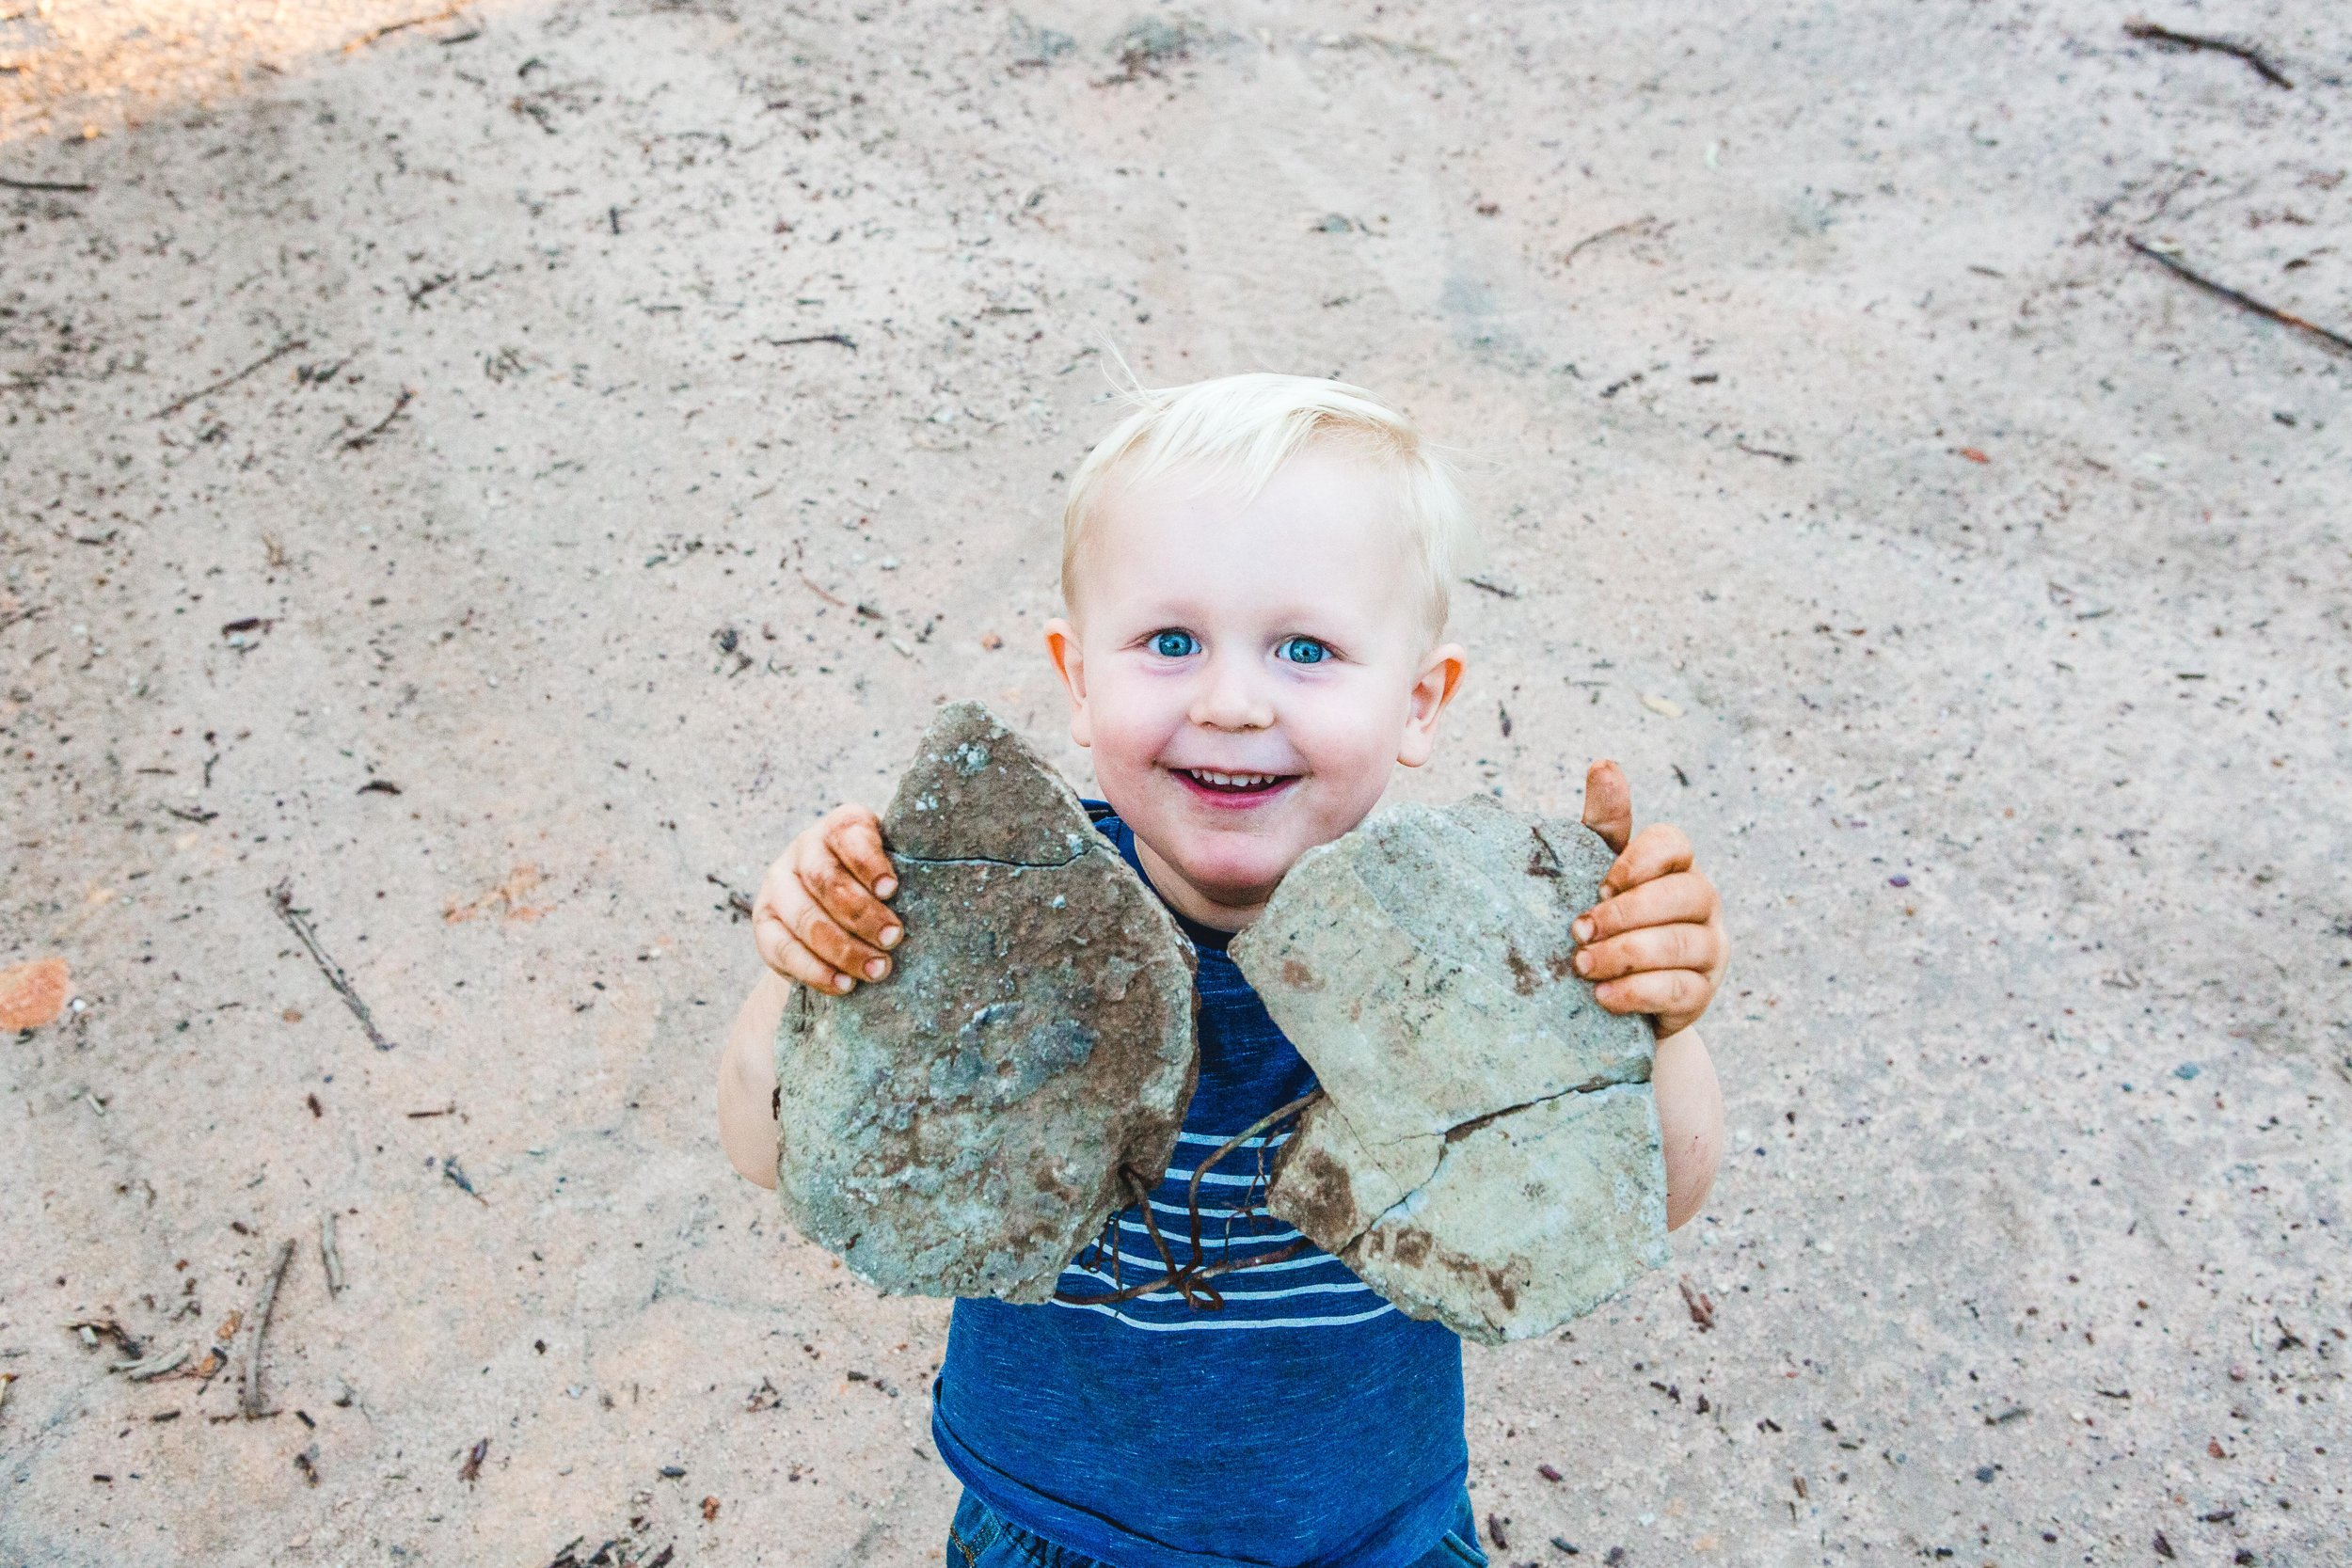 Toddlers are a magnet for dirt!